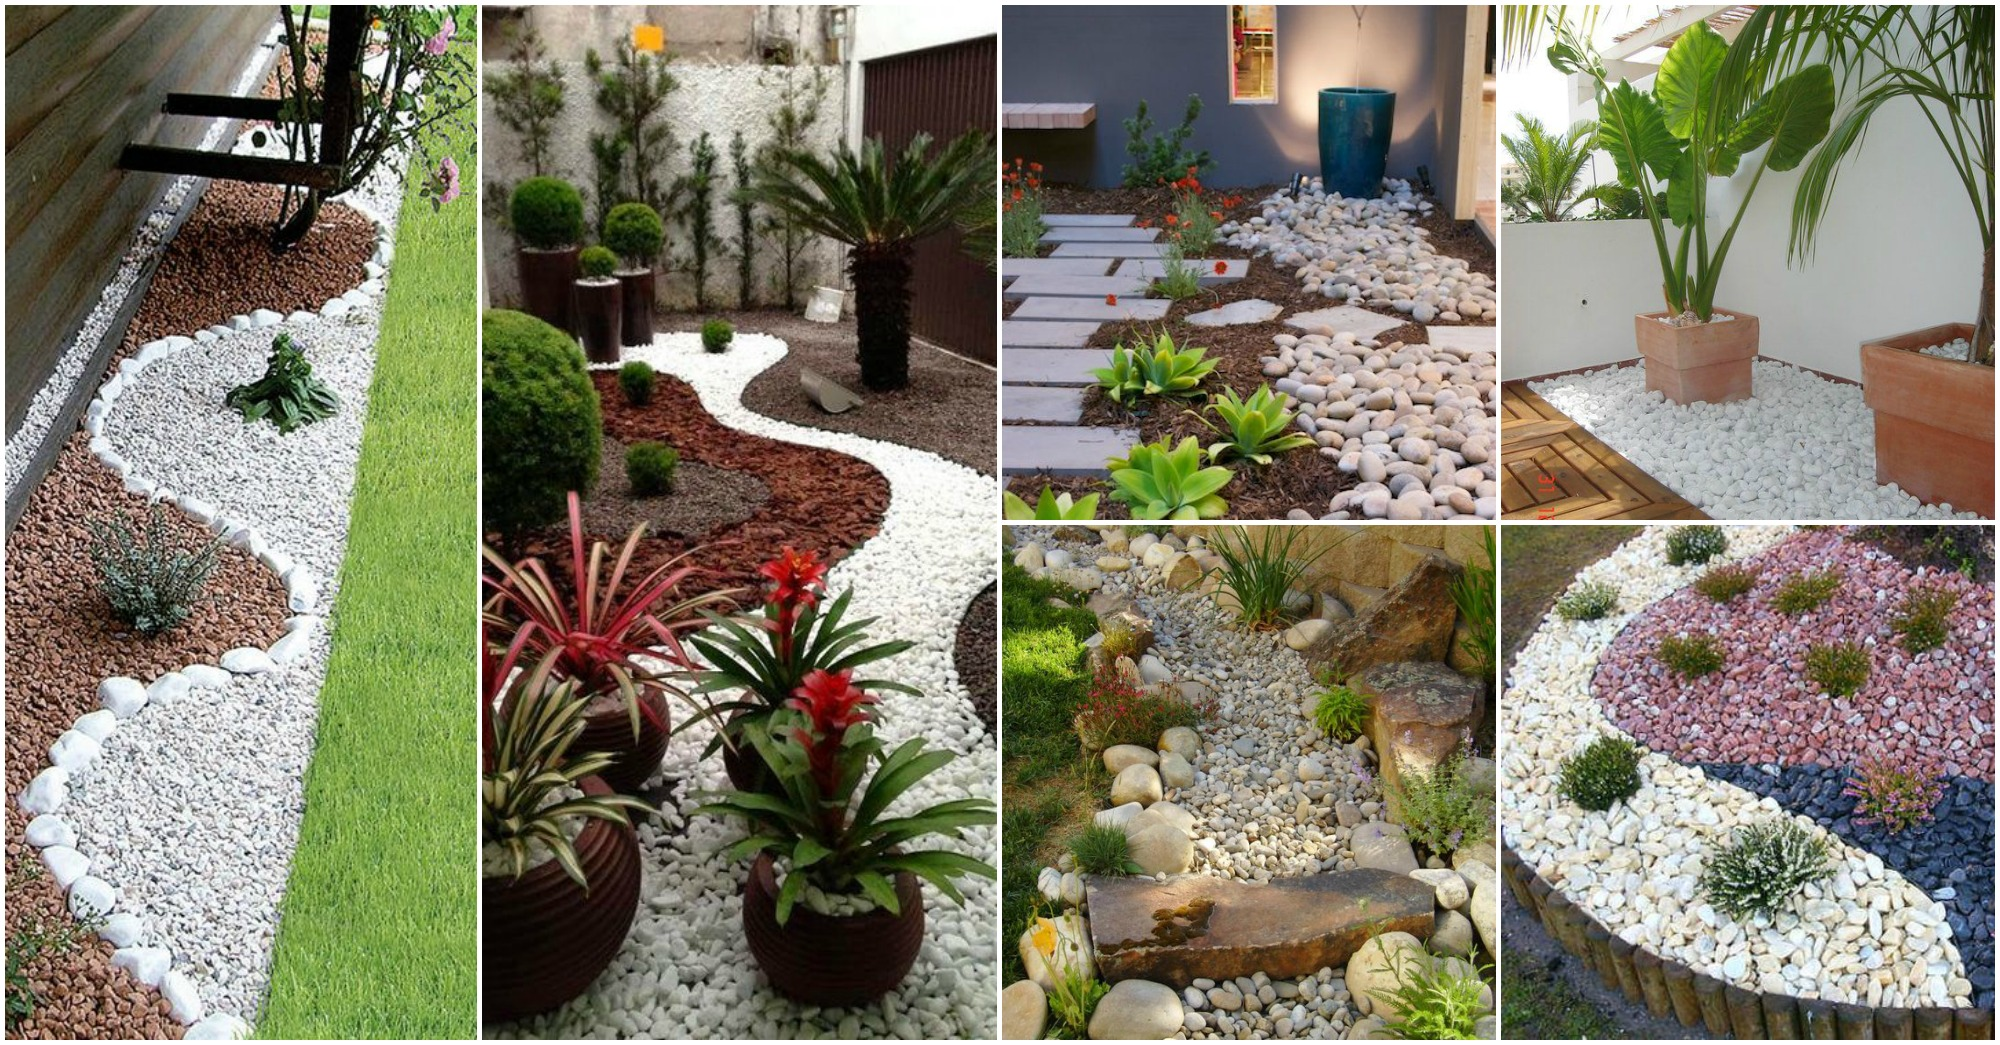 20 hermosas ideas para decorar tu jard n con piedras for Ideas para decorar jardines pequenos